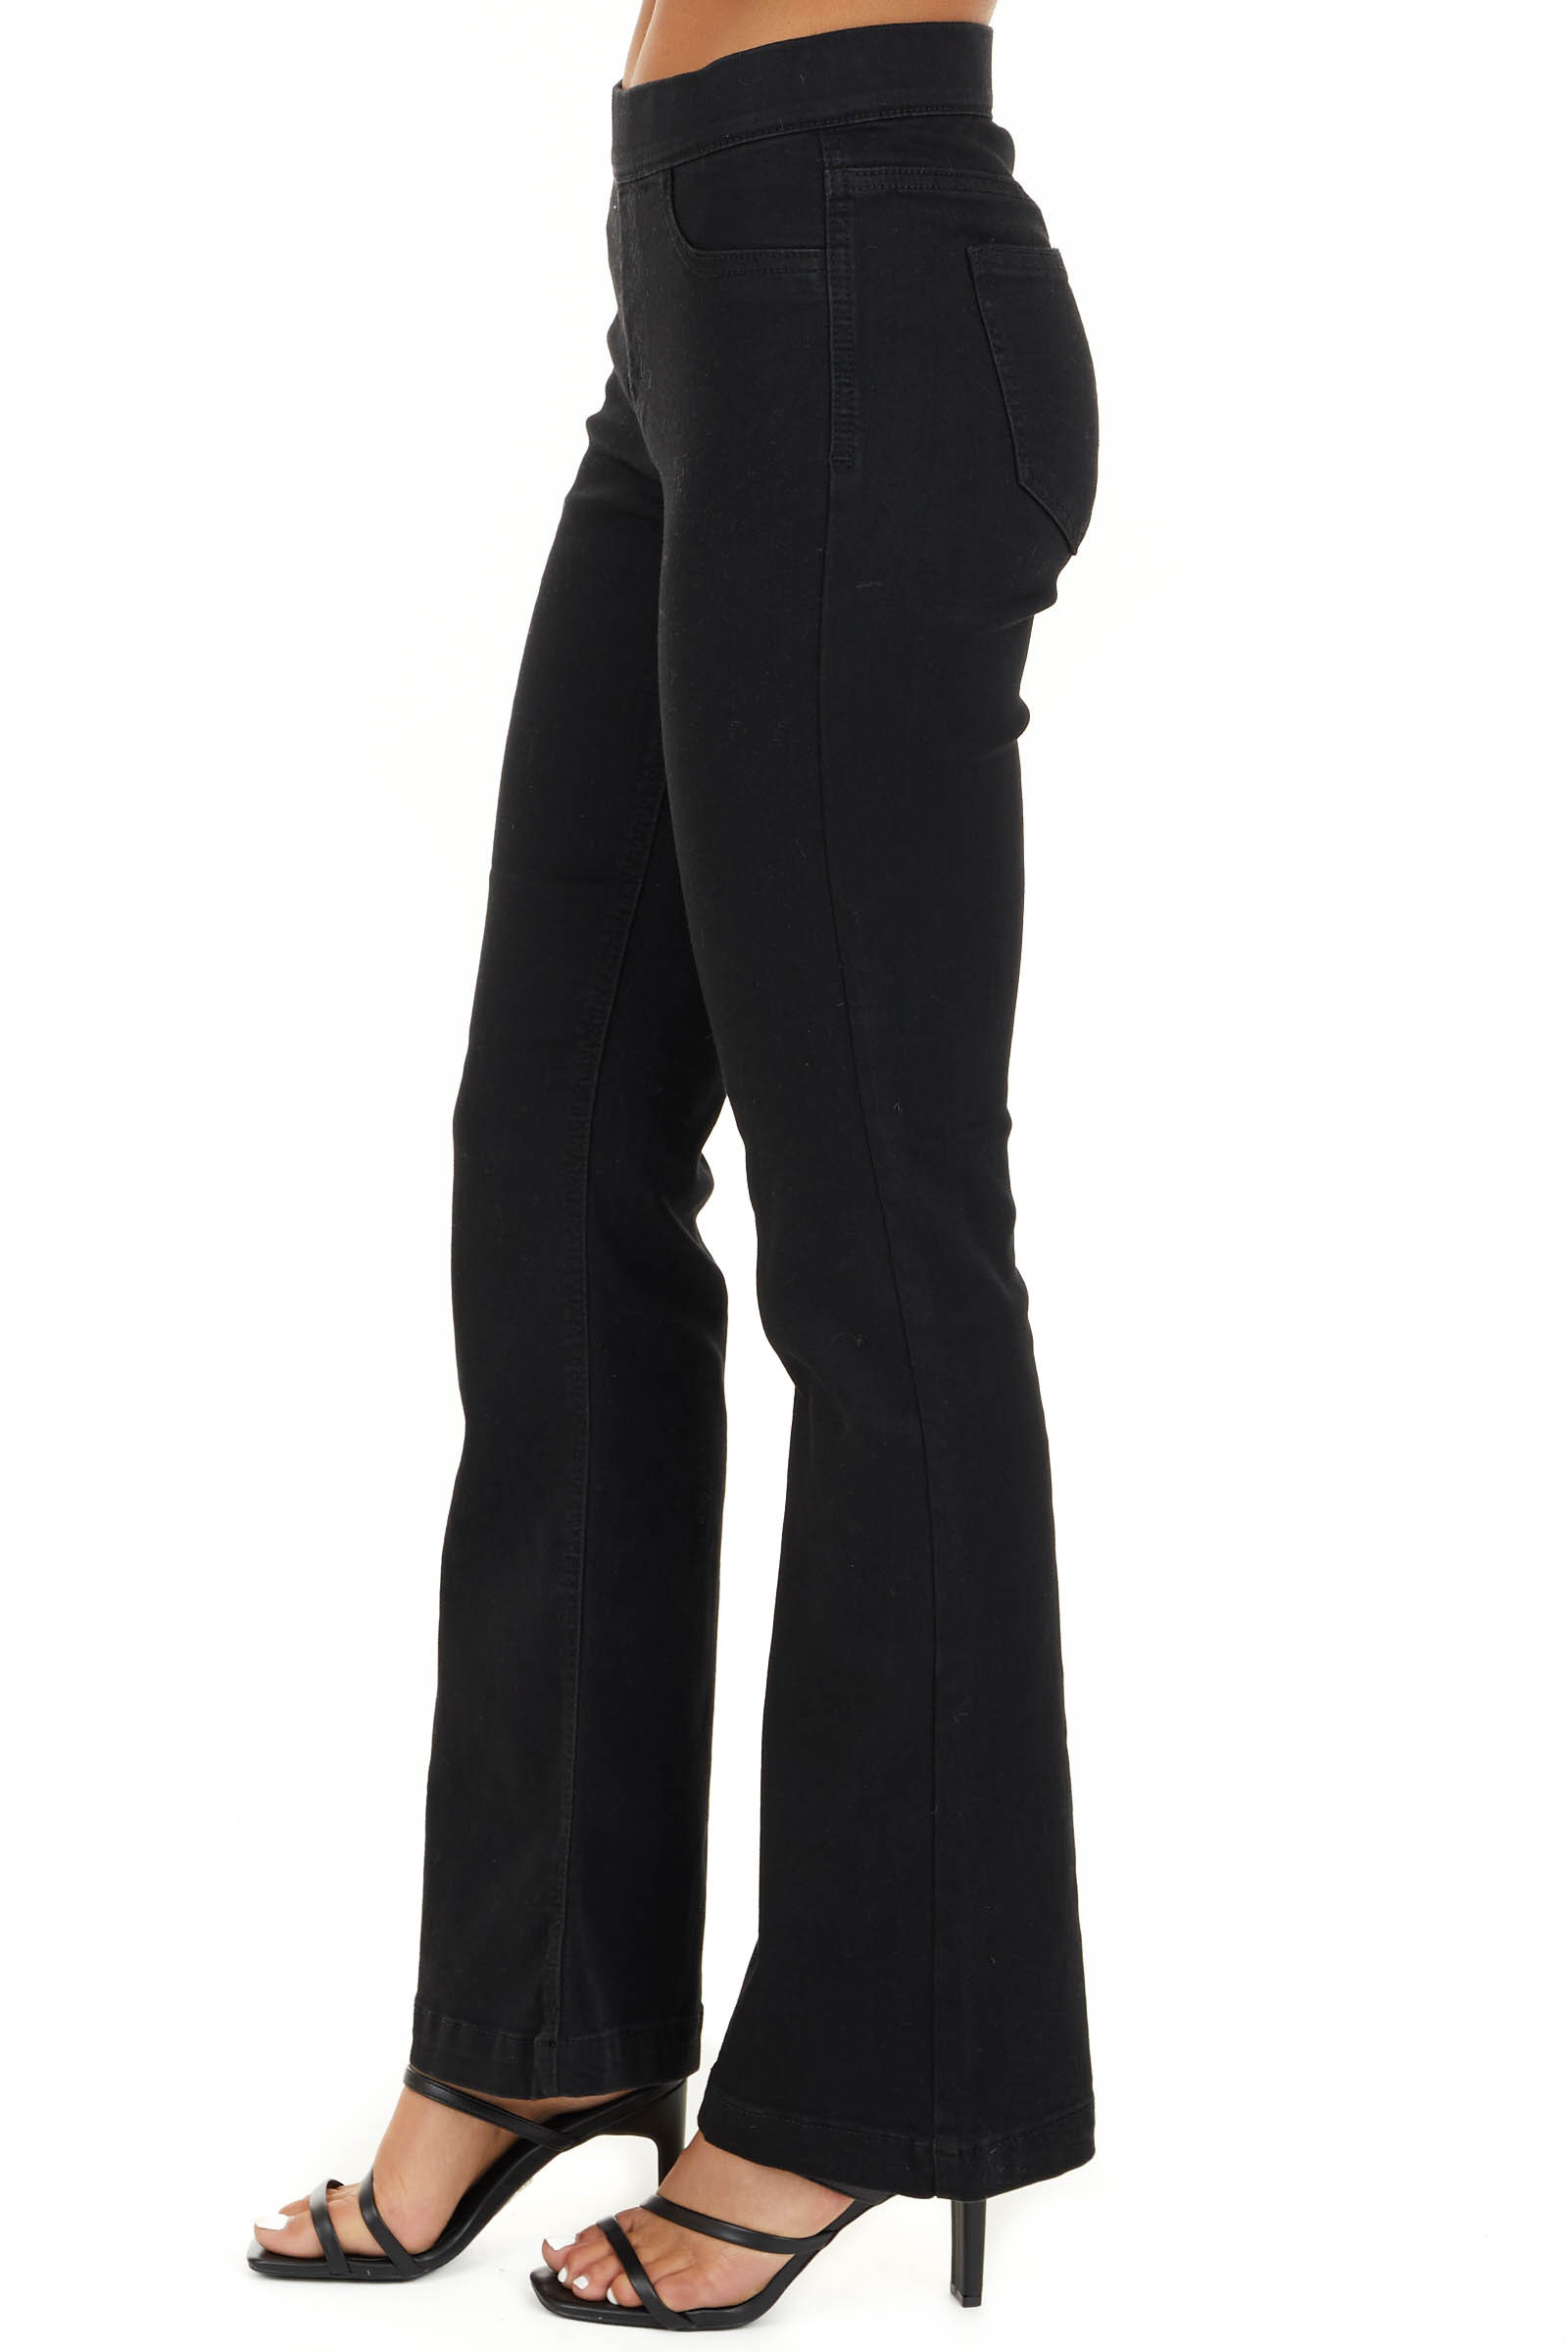 Black Solid Denim Flare Jeggings with Elastic Waistband side view